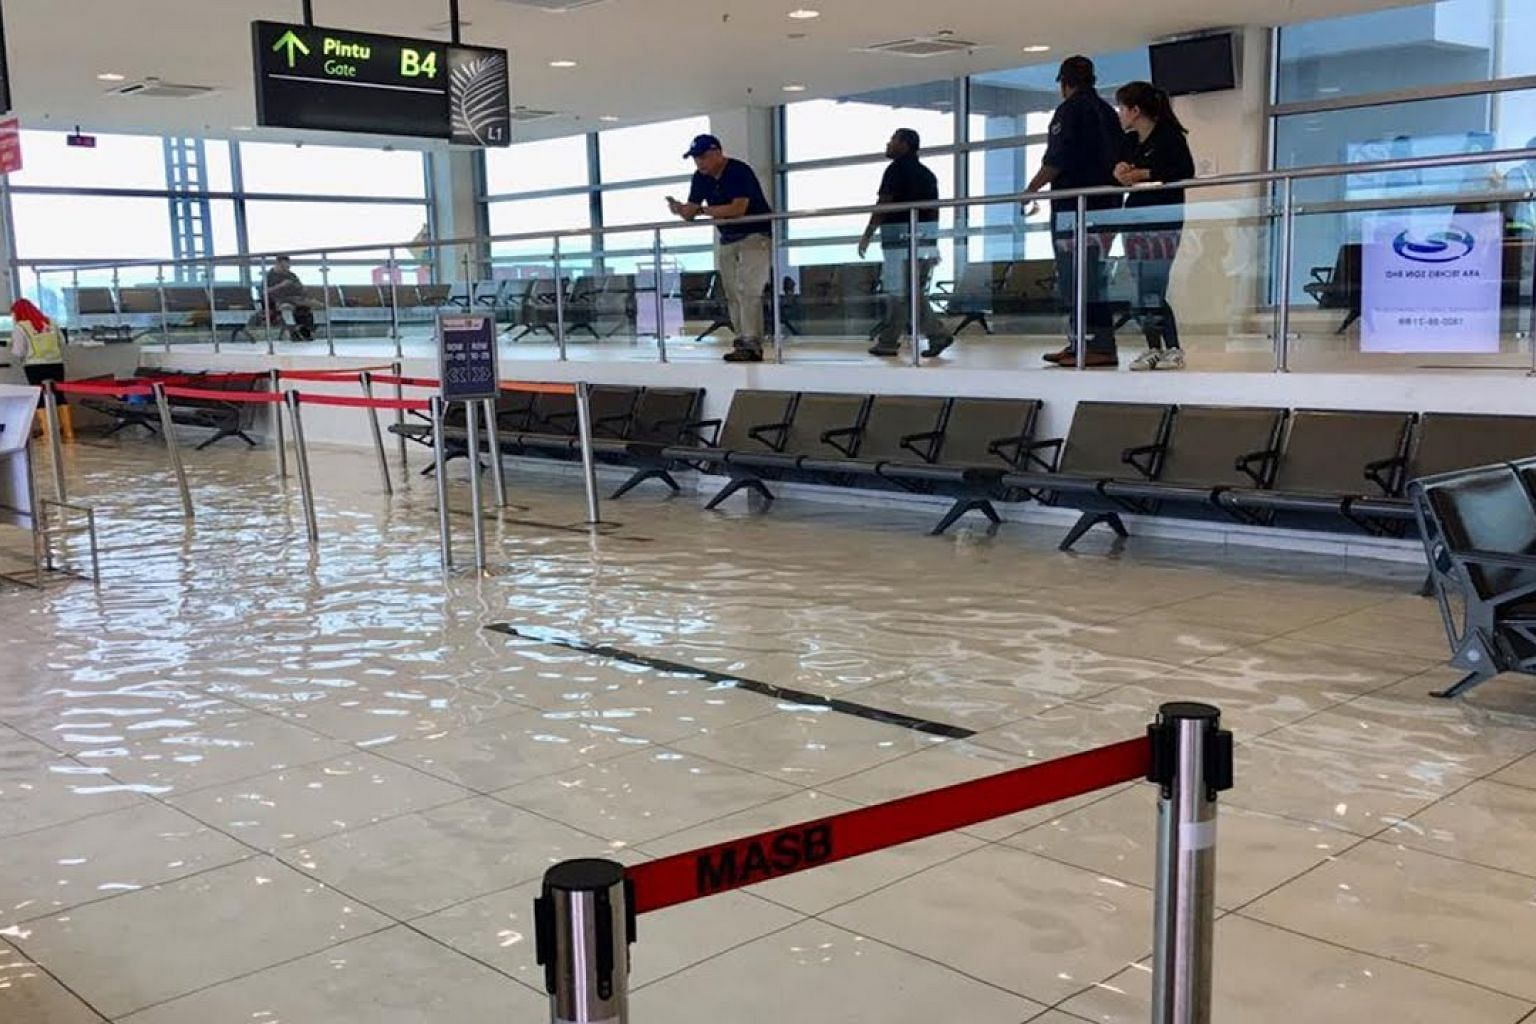 Penang airport flooded again - 'unusually heavy' downpour blamed